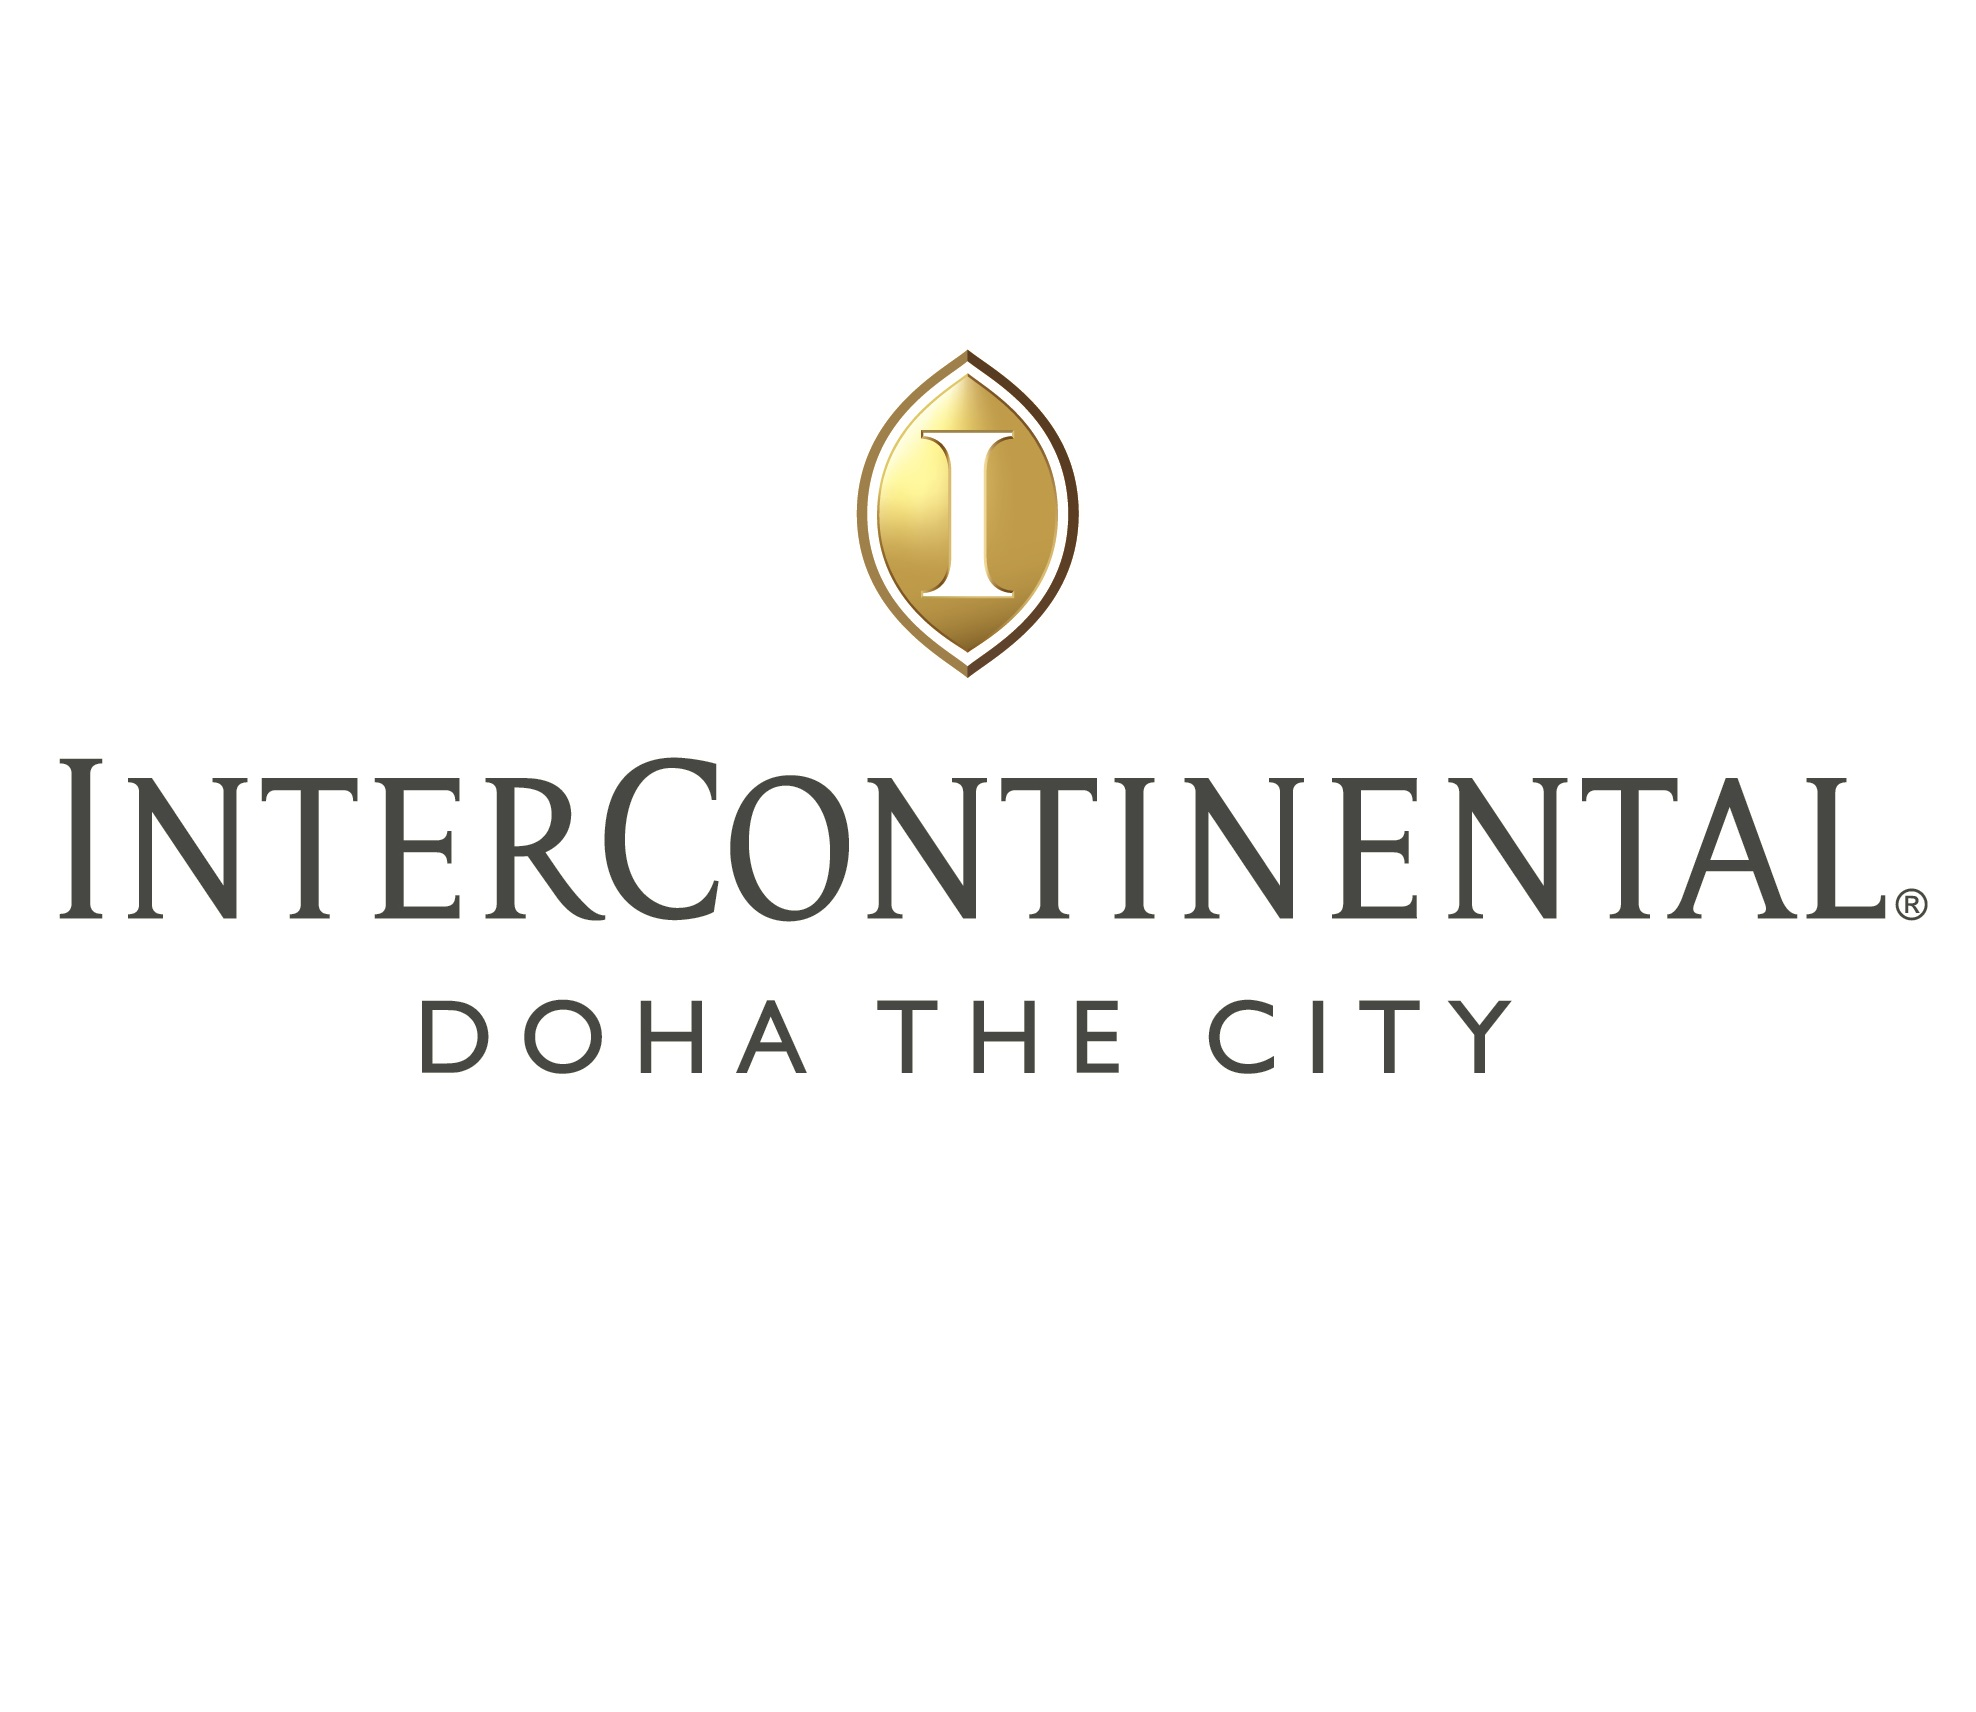 Intercontinental Doha The City